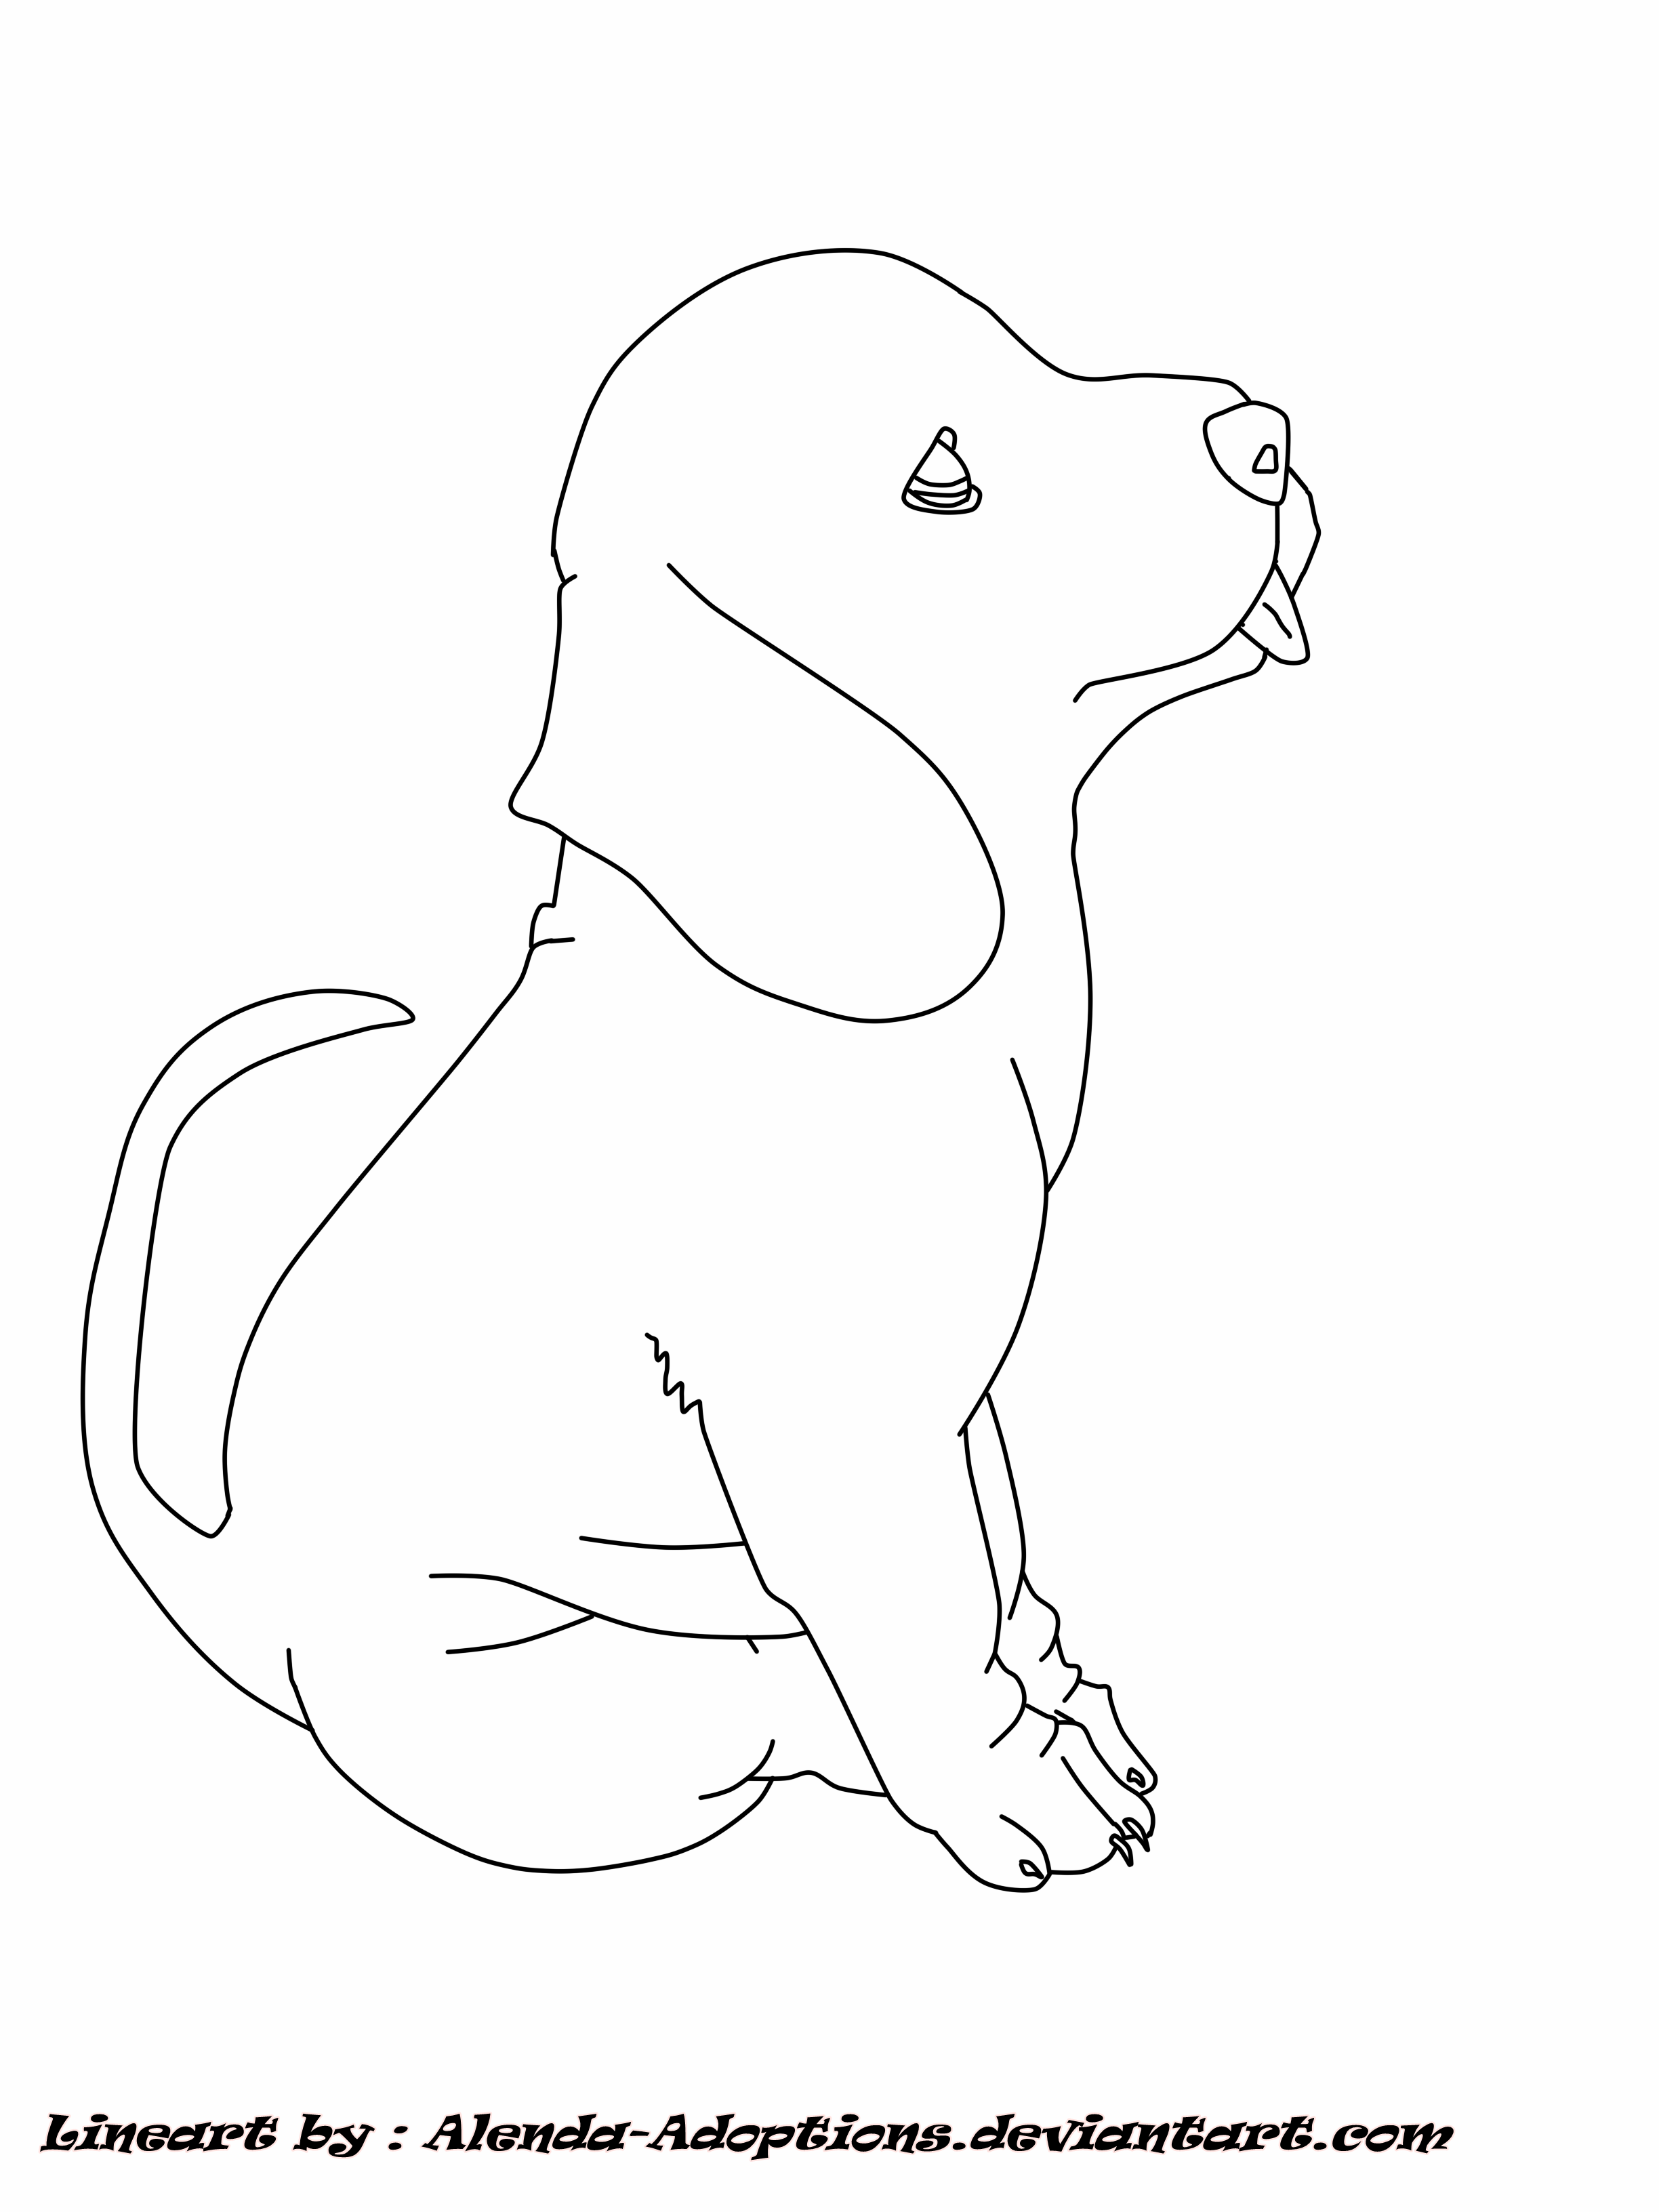 Line Drawing Of Dog : Free dog lineart by alenda adoptions on deviantart